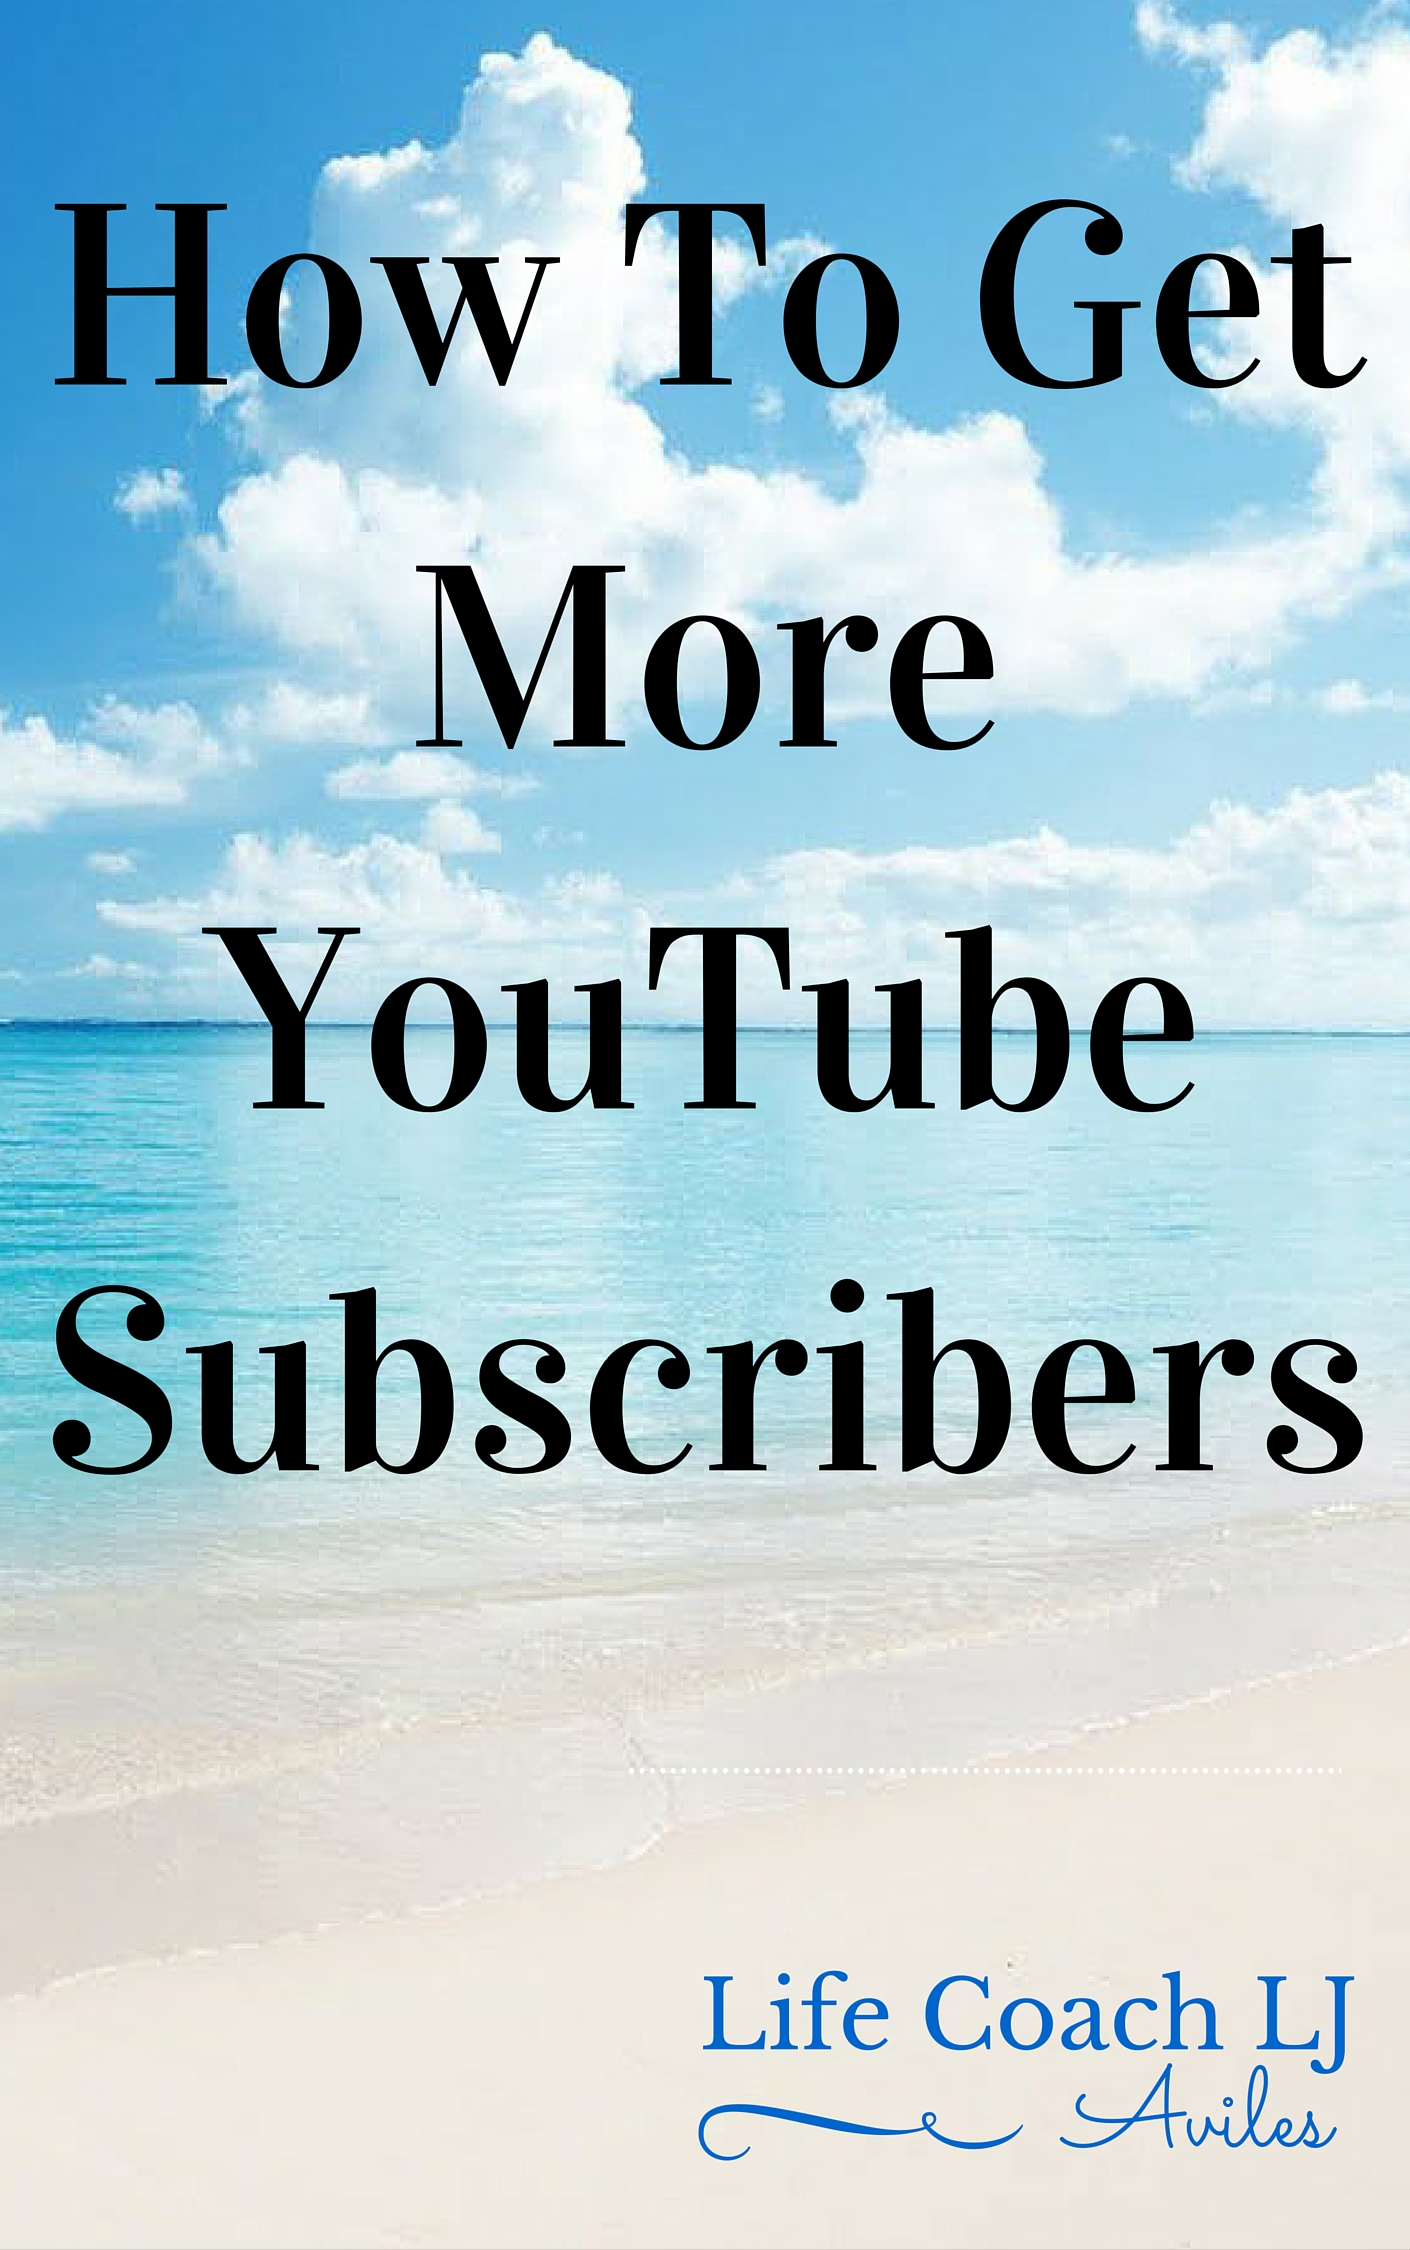 How-To-Get-More-YouTube-Subscribers-Ebook